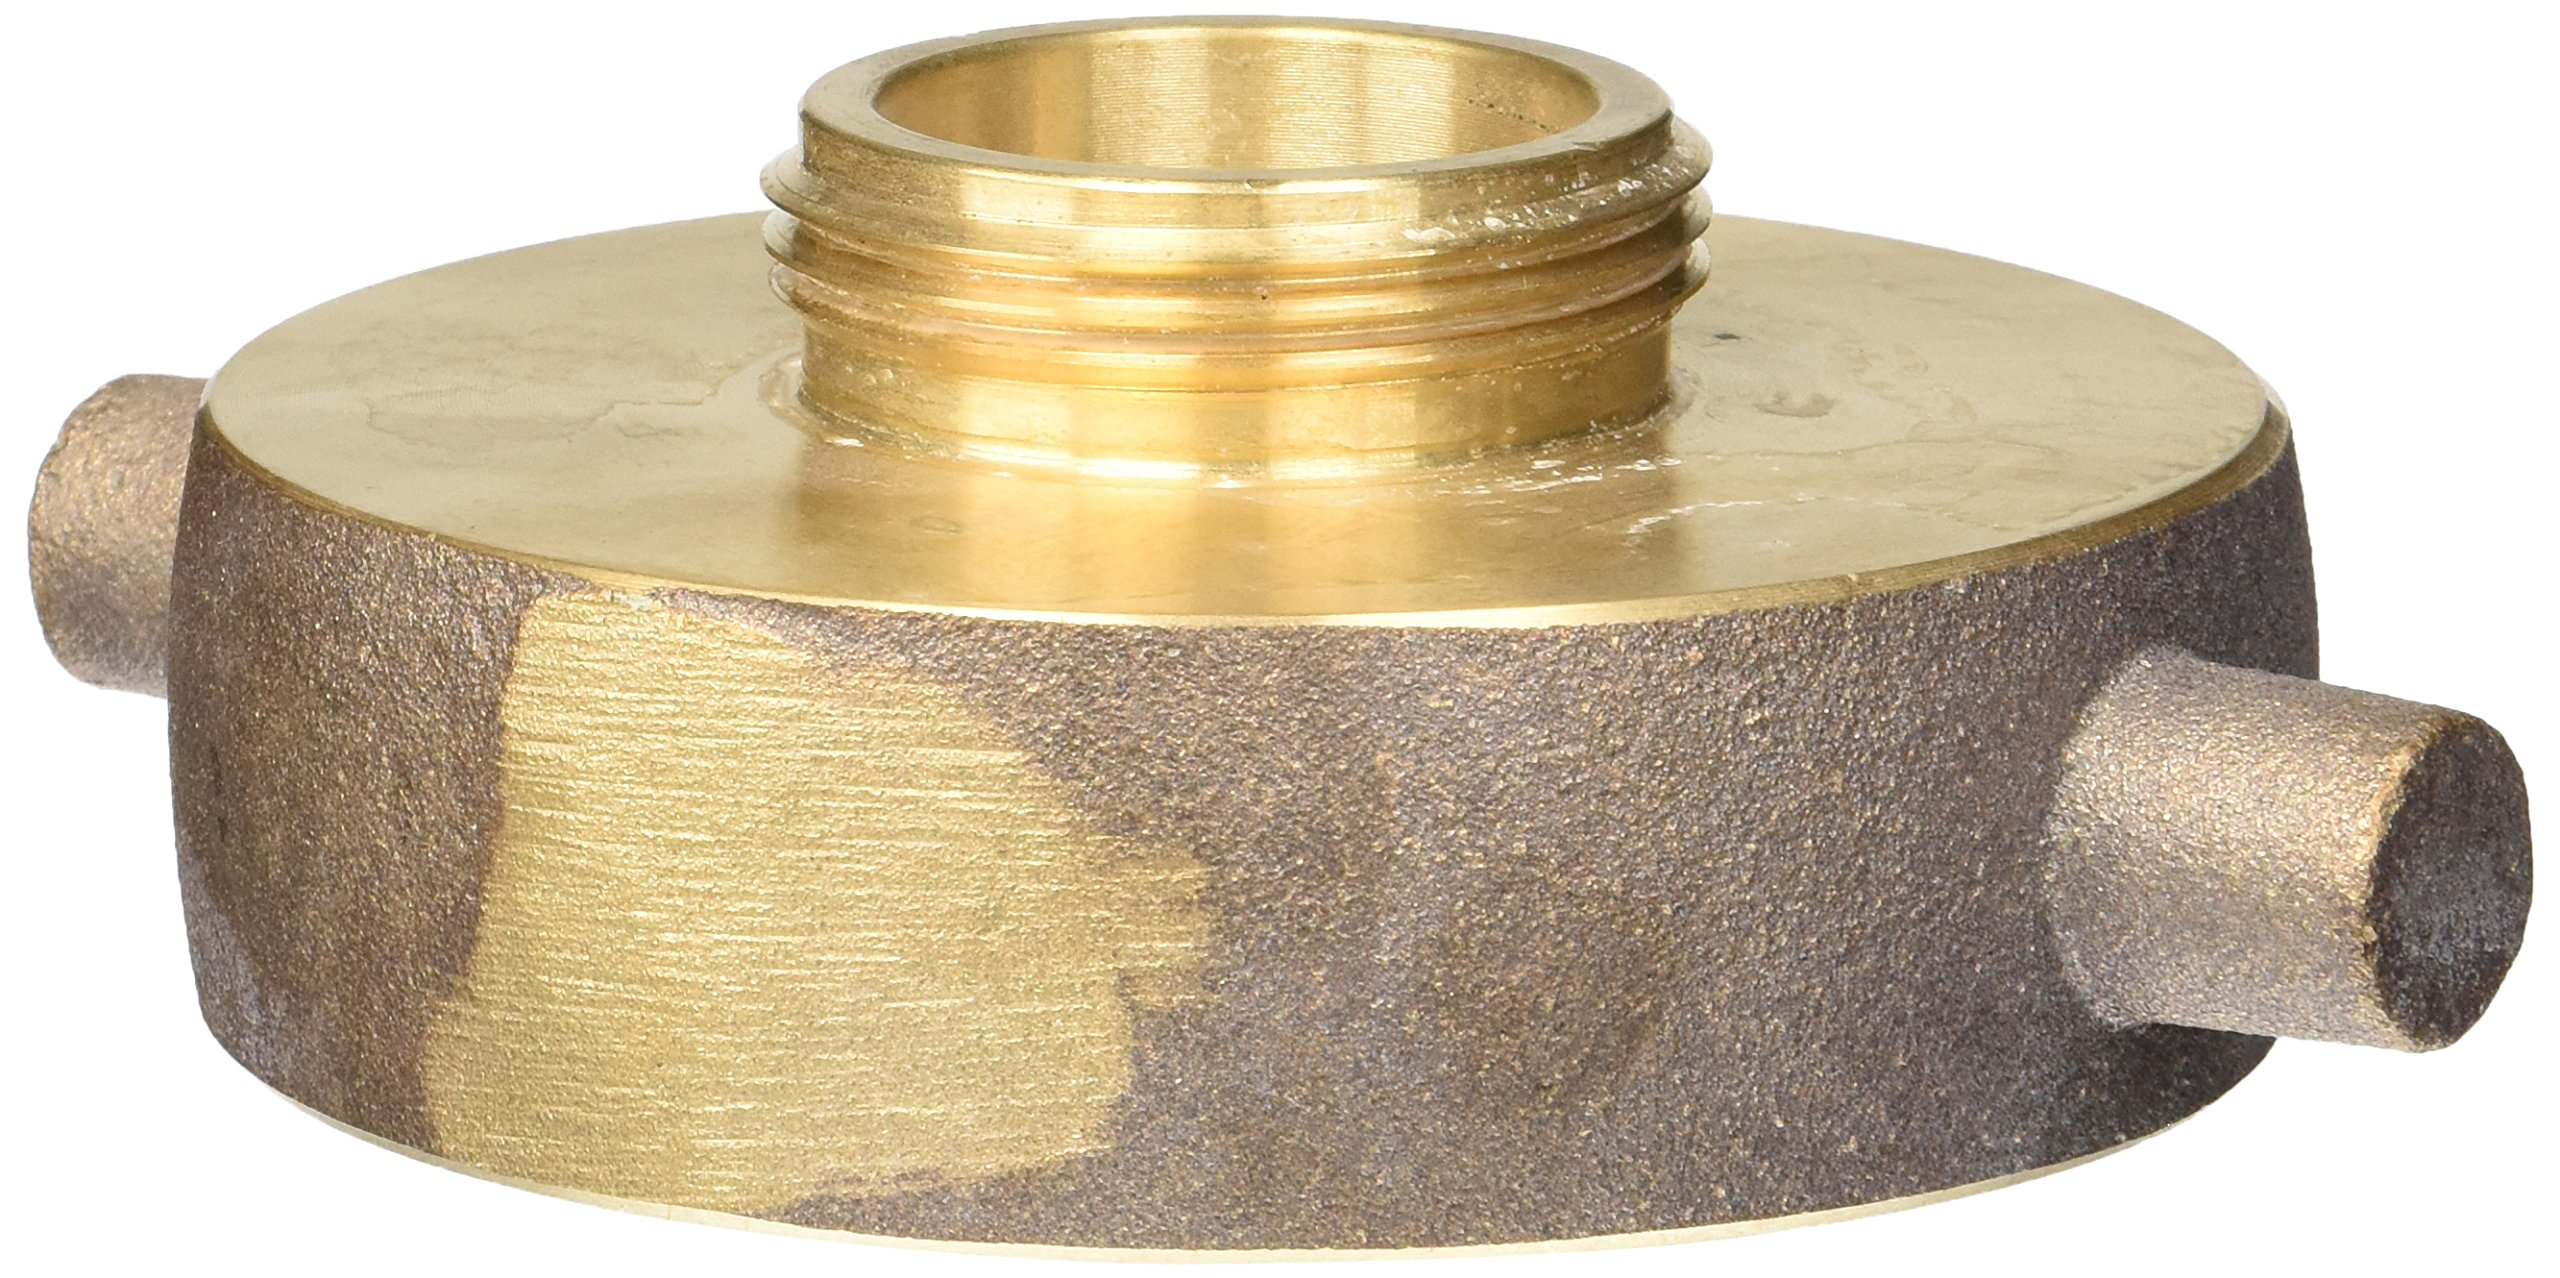 Dixon Valve HA3015F Brass Fire Equipment, Hydrant Adapter with Pin Lug, 3'' NST (NH) Female x 1-1/2'' NST (NH) Male